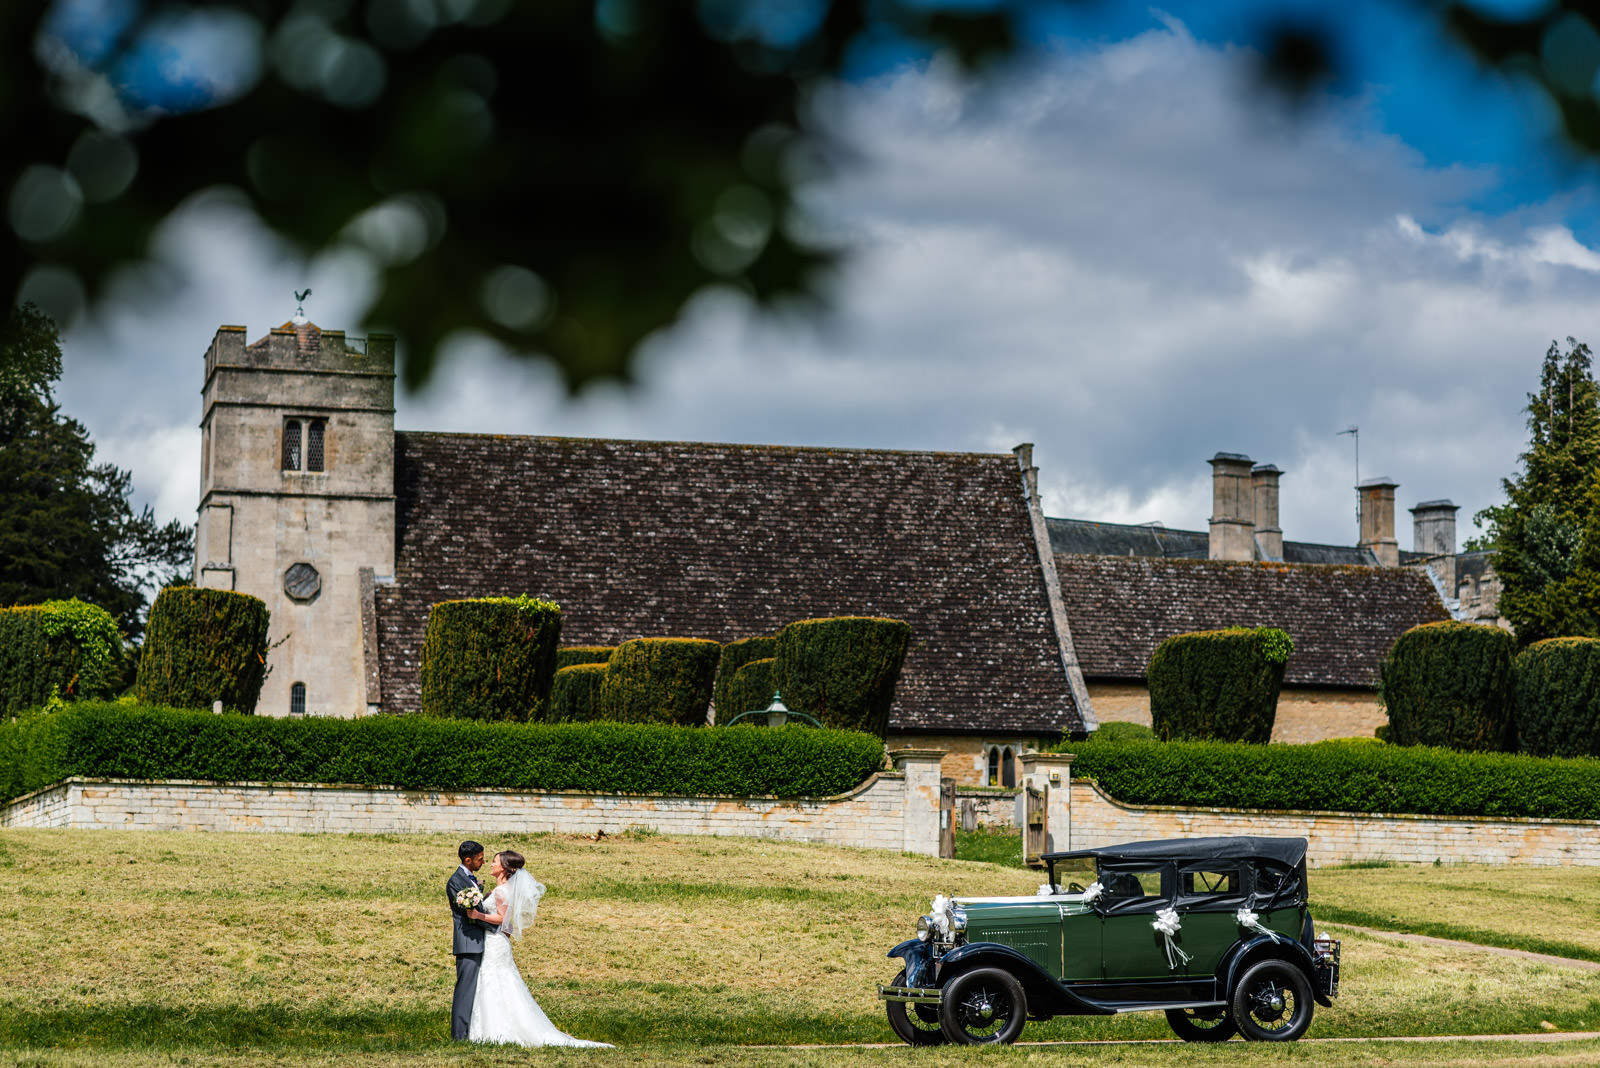 Church bride and groom and vintage car